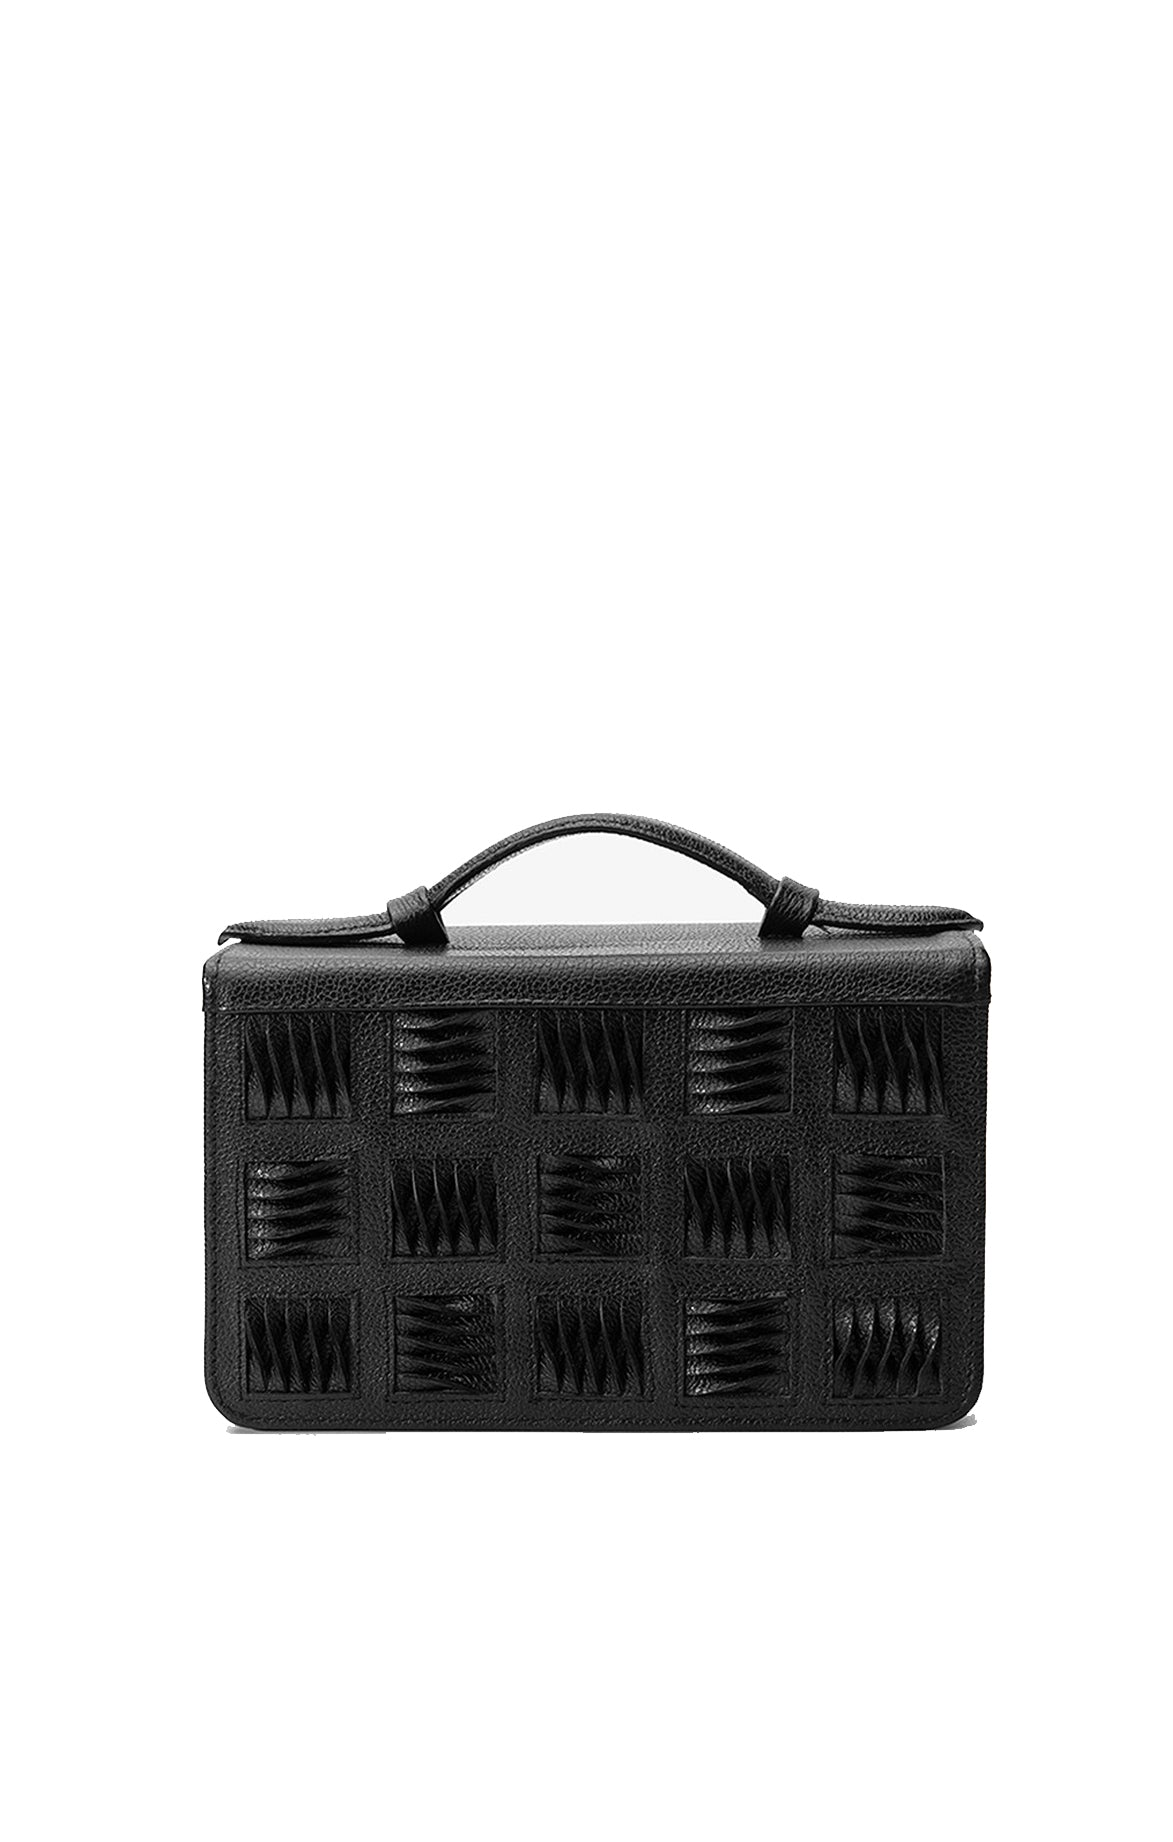 Mila Beltbag Black